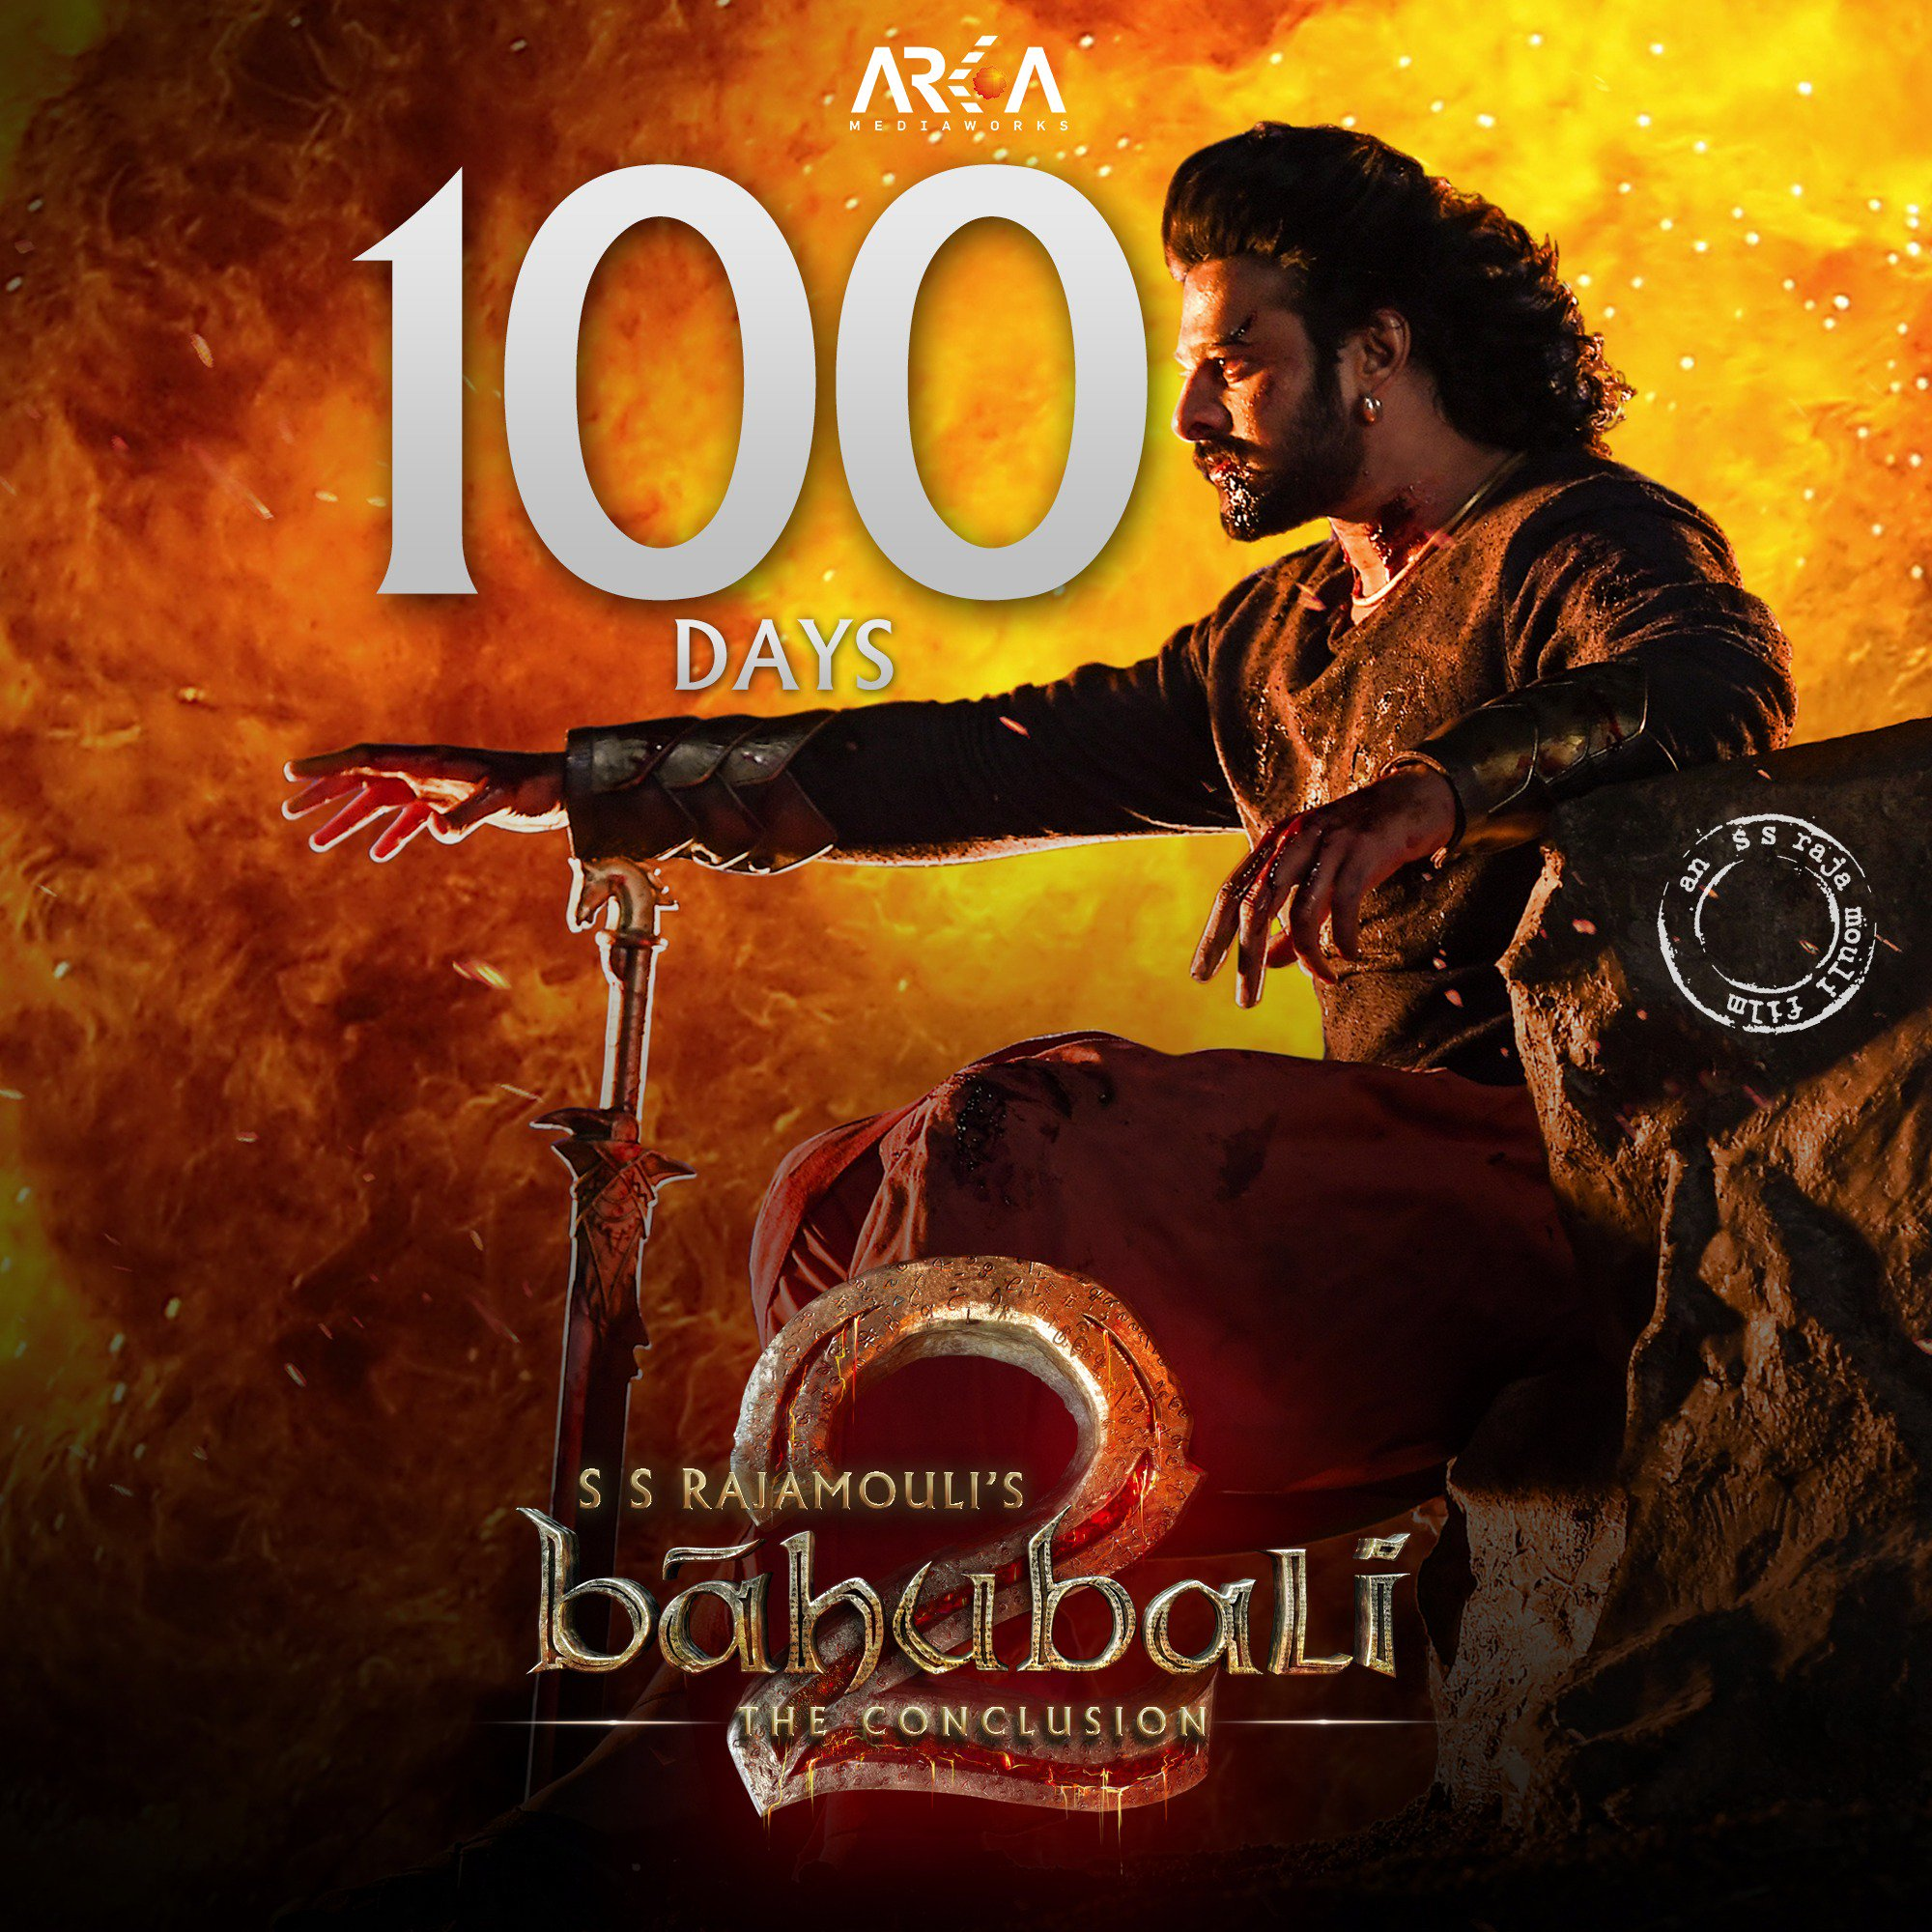 Baahubali : The Conclusion completed its 100th day in cinemas today